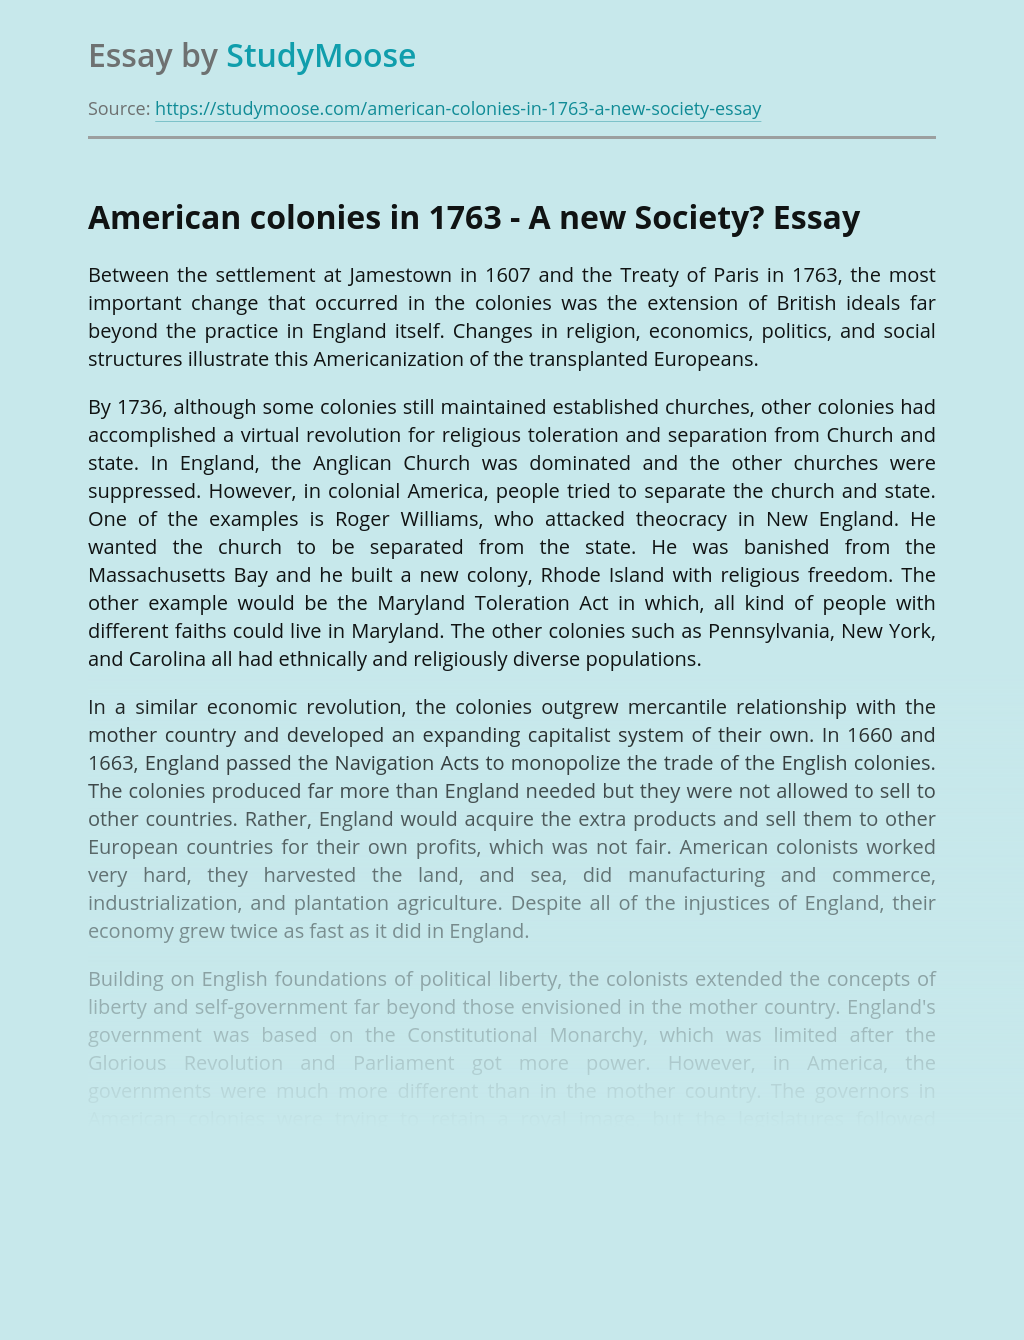 American colonies in 1763 - A new Society?